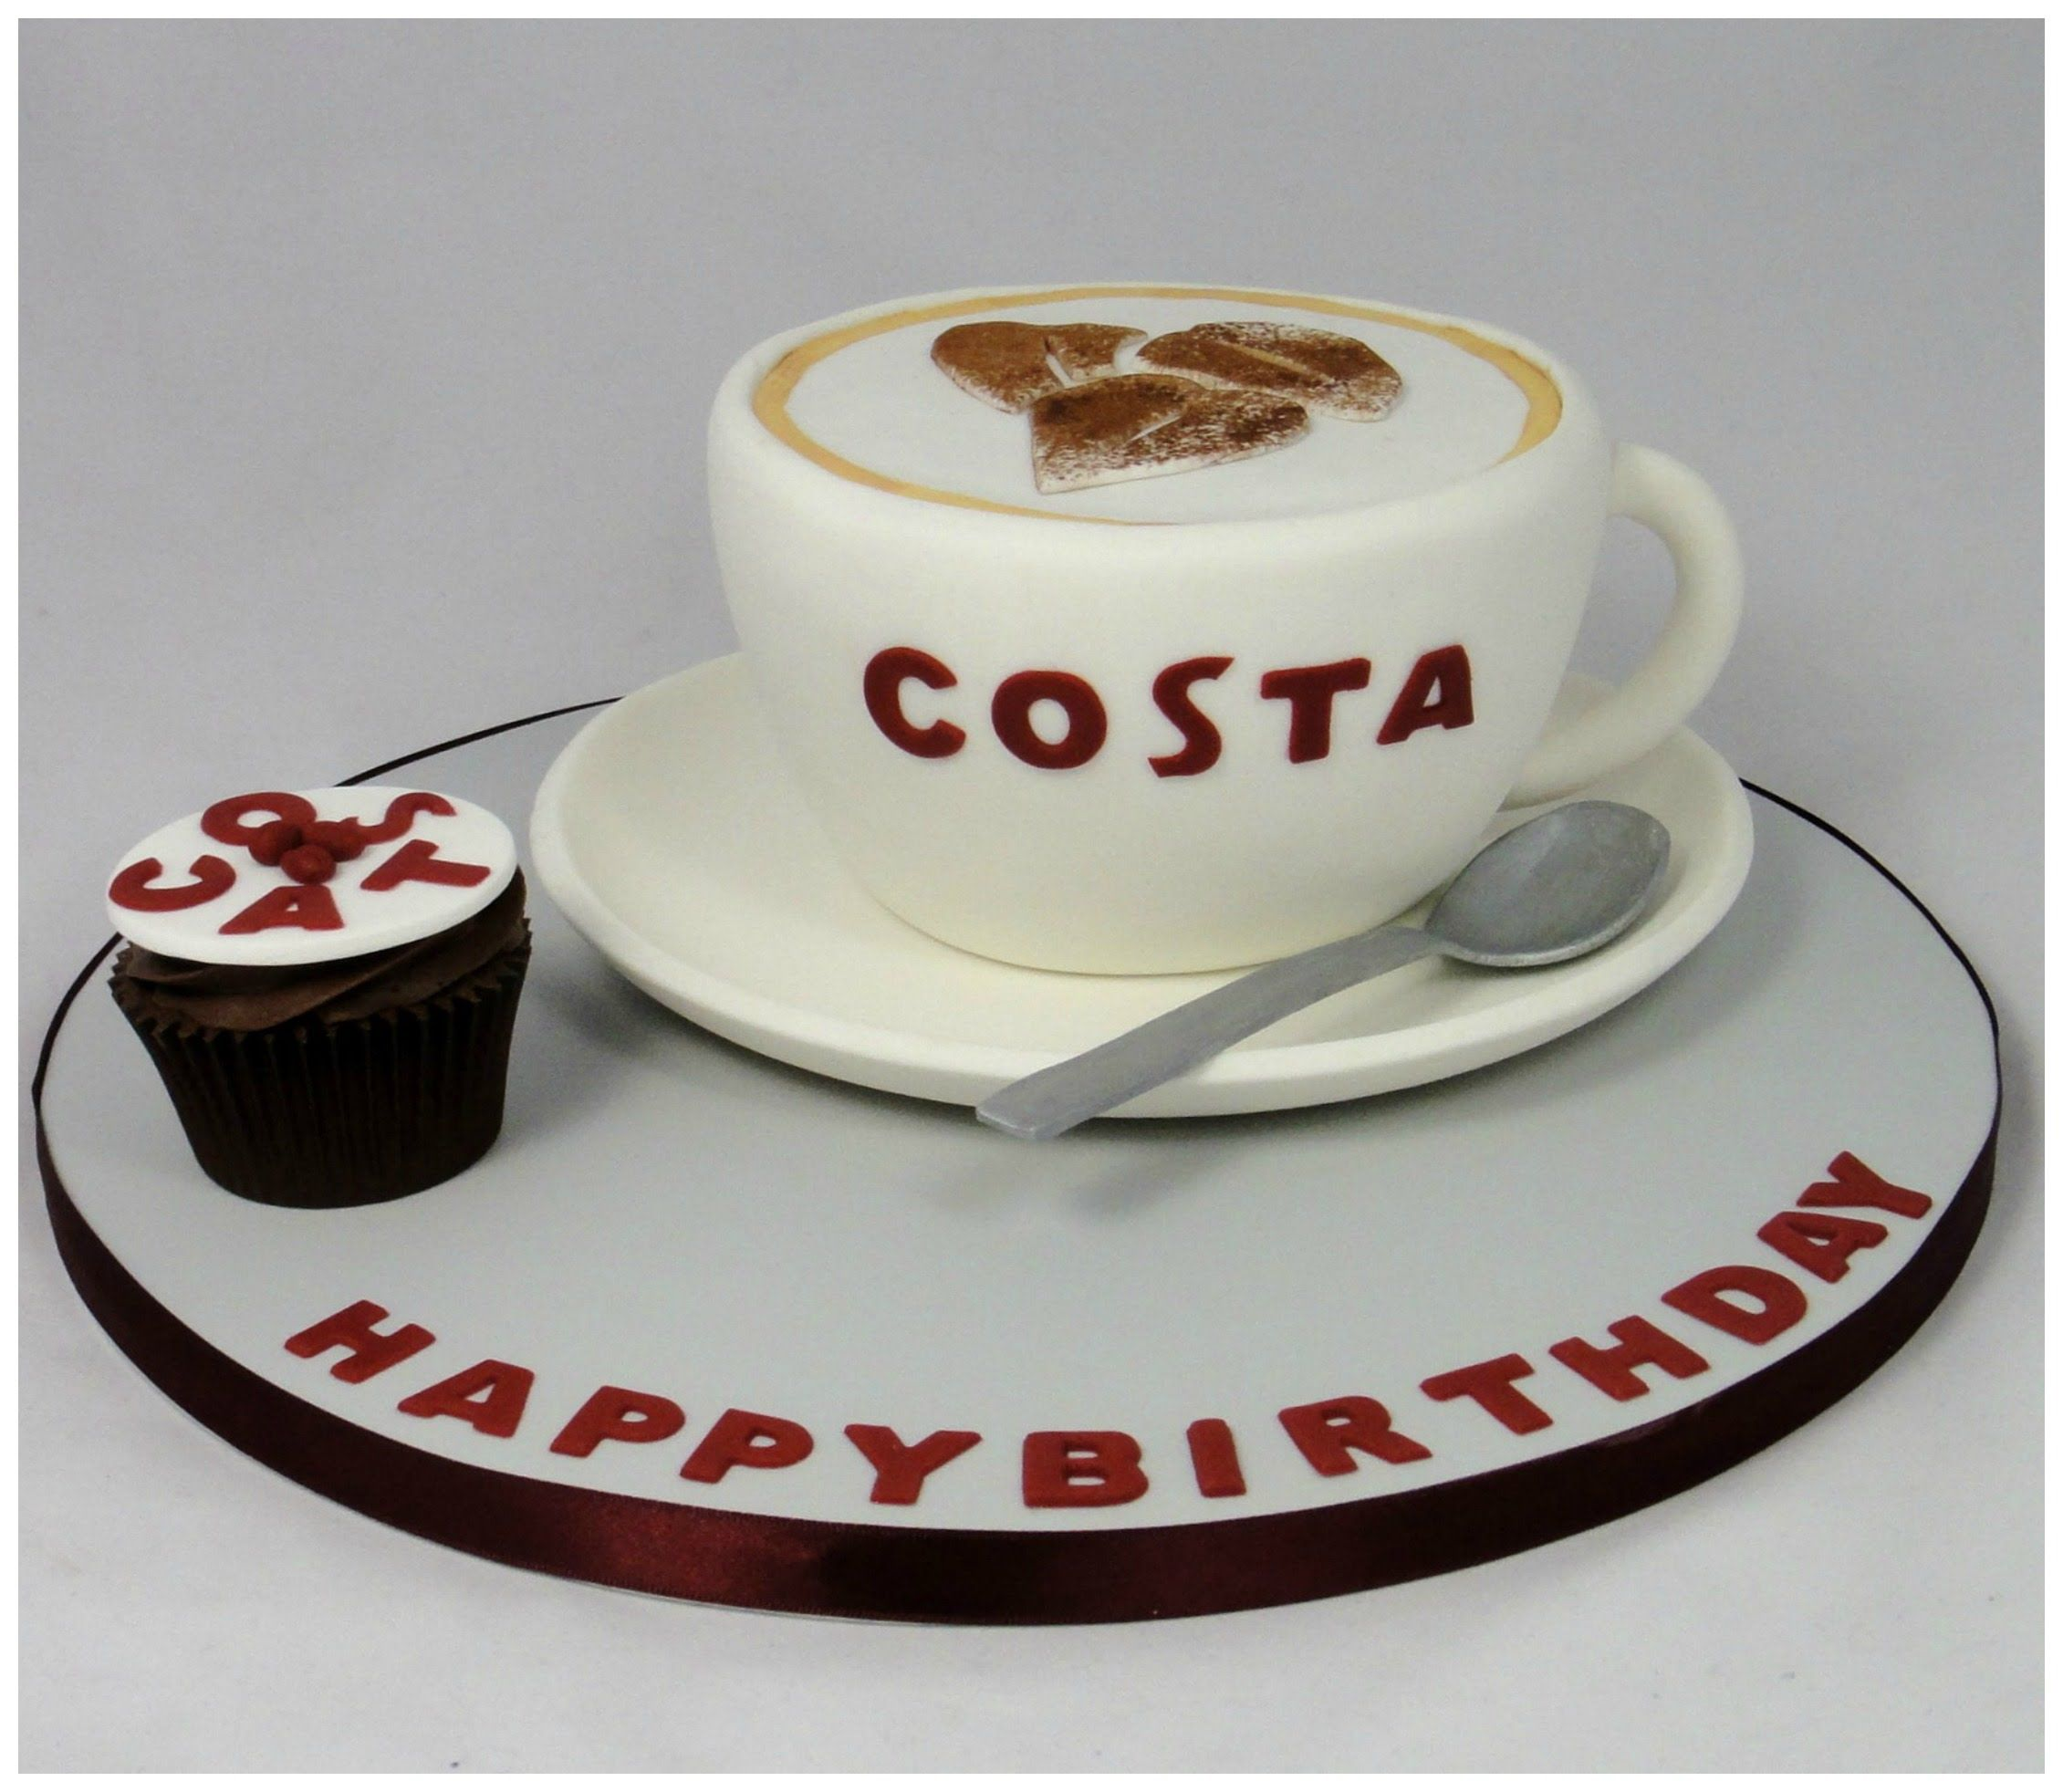 Stupendous How To Make A Costa Coffee Cup Novelty Cake Fondant Tutorial Funny Birthday Cards Online Kookostrdamsfinfo